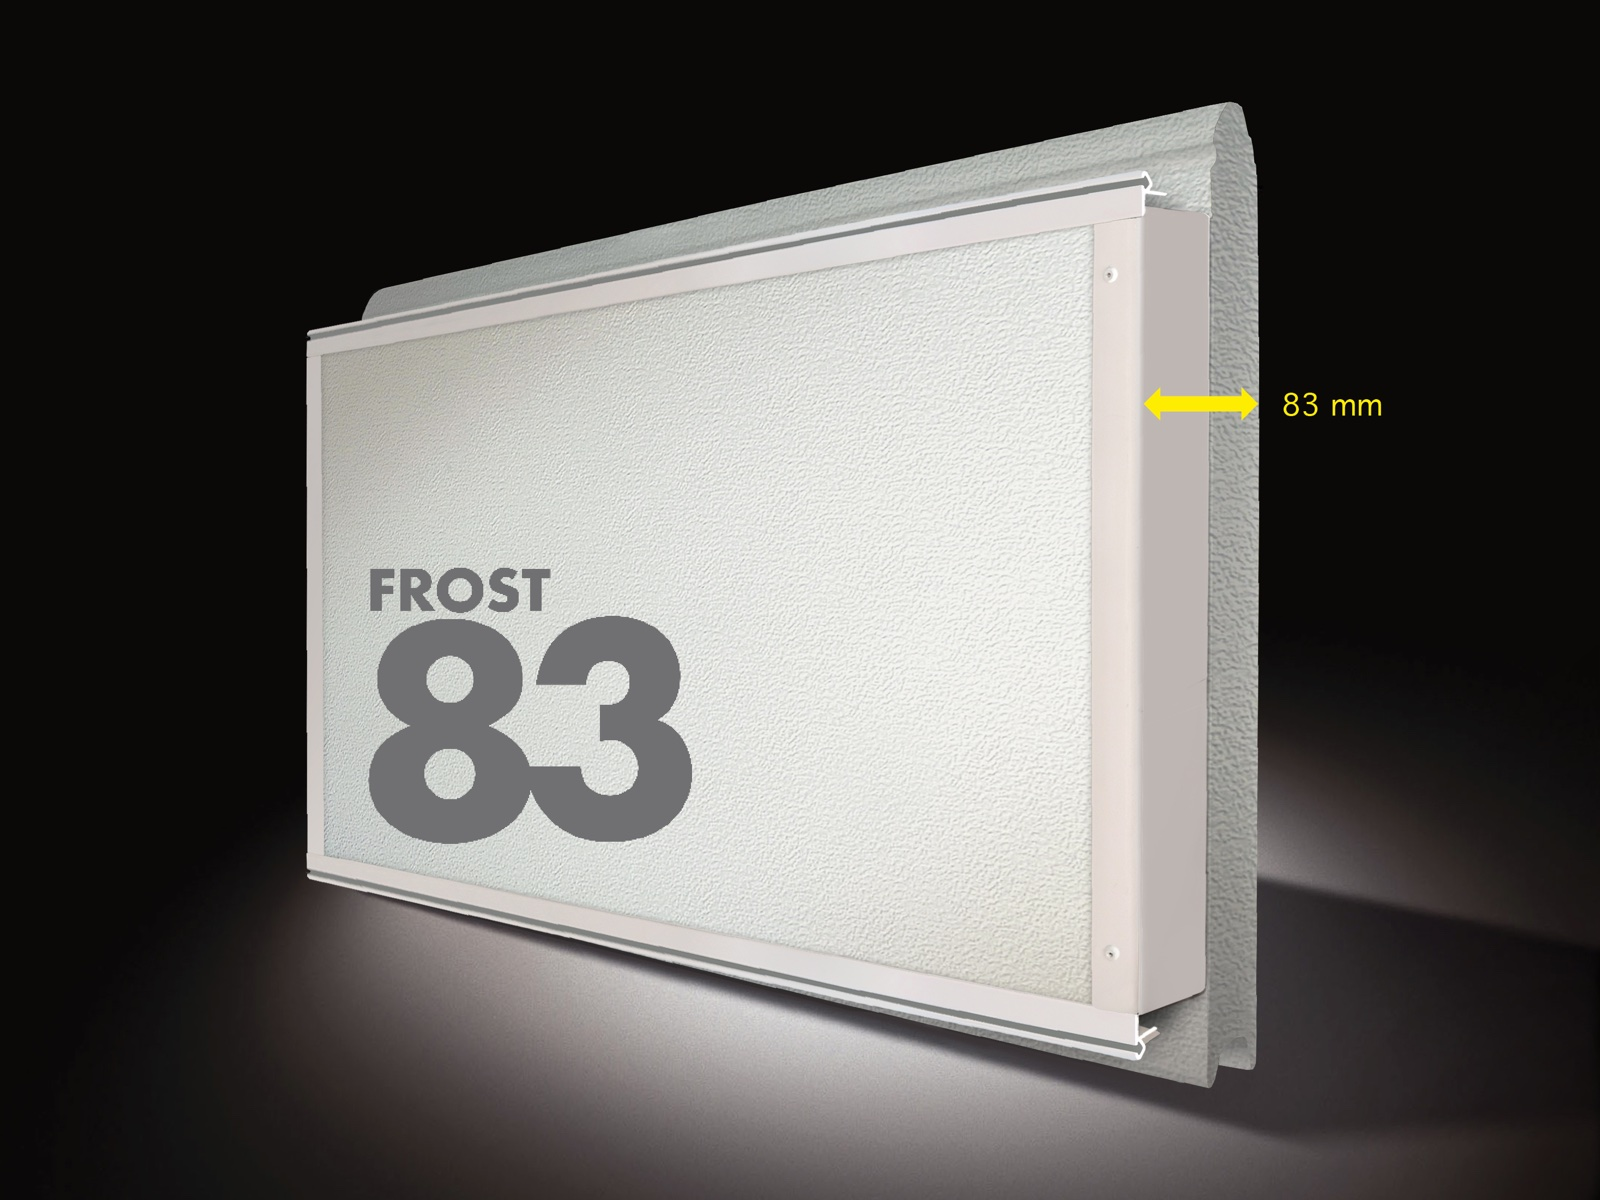 Frost 83